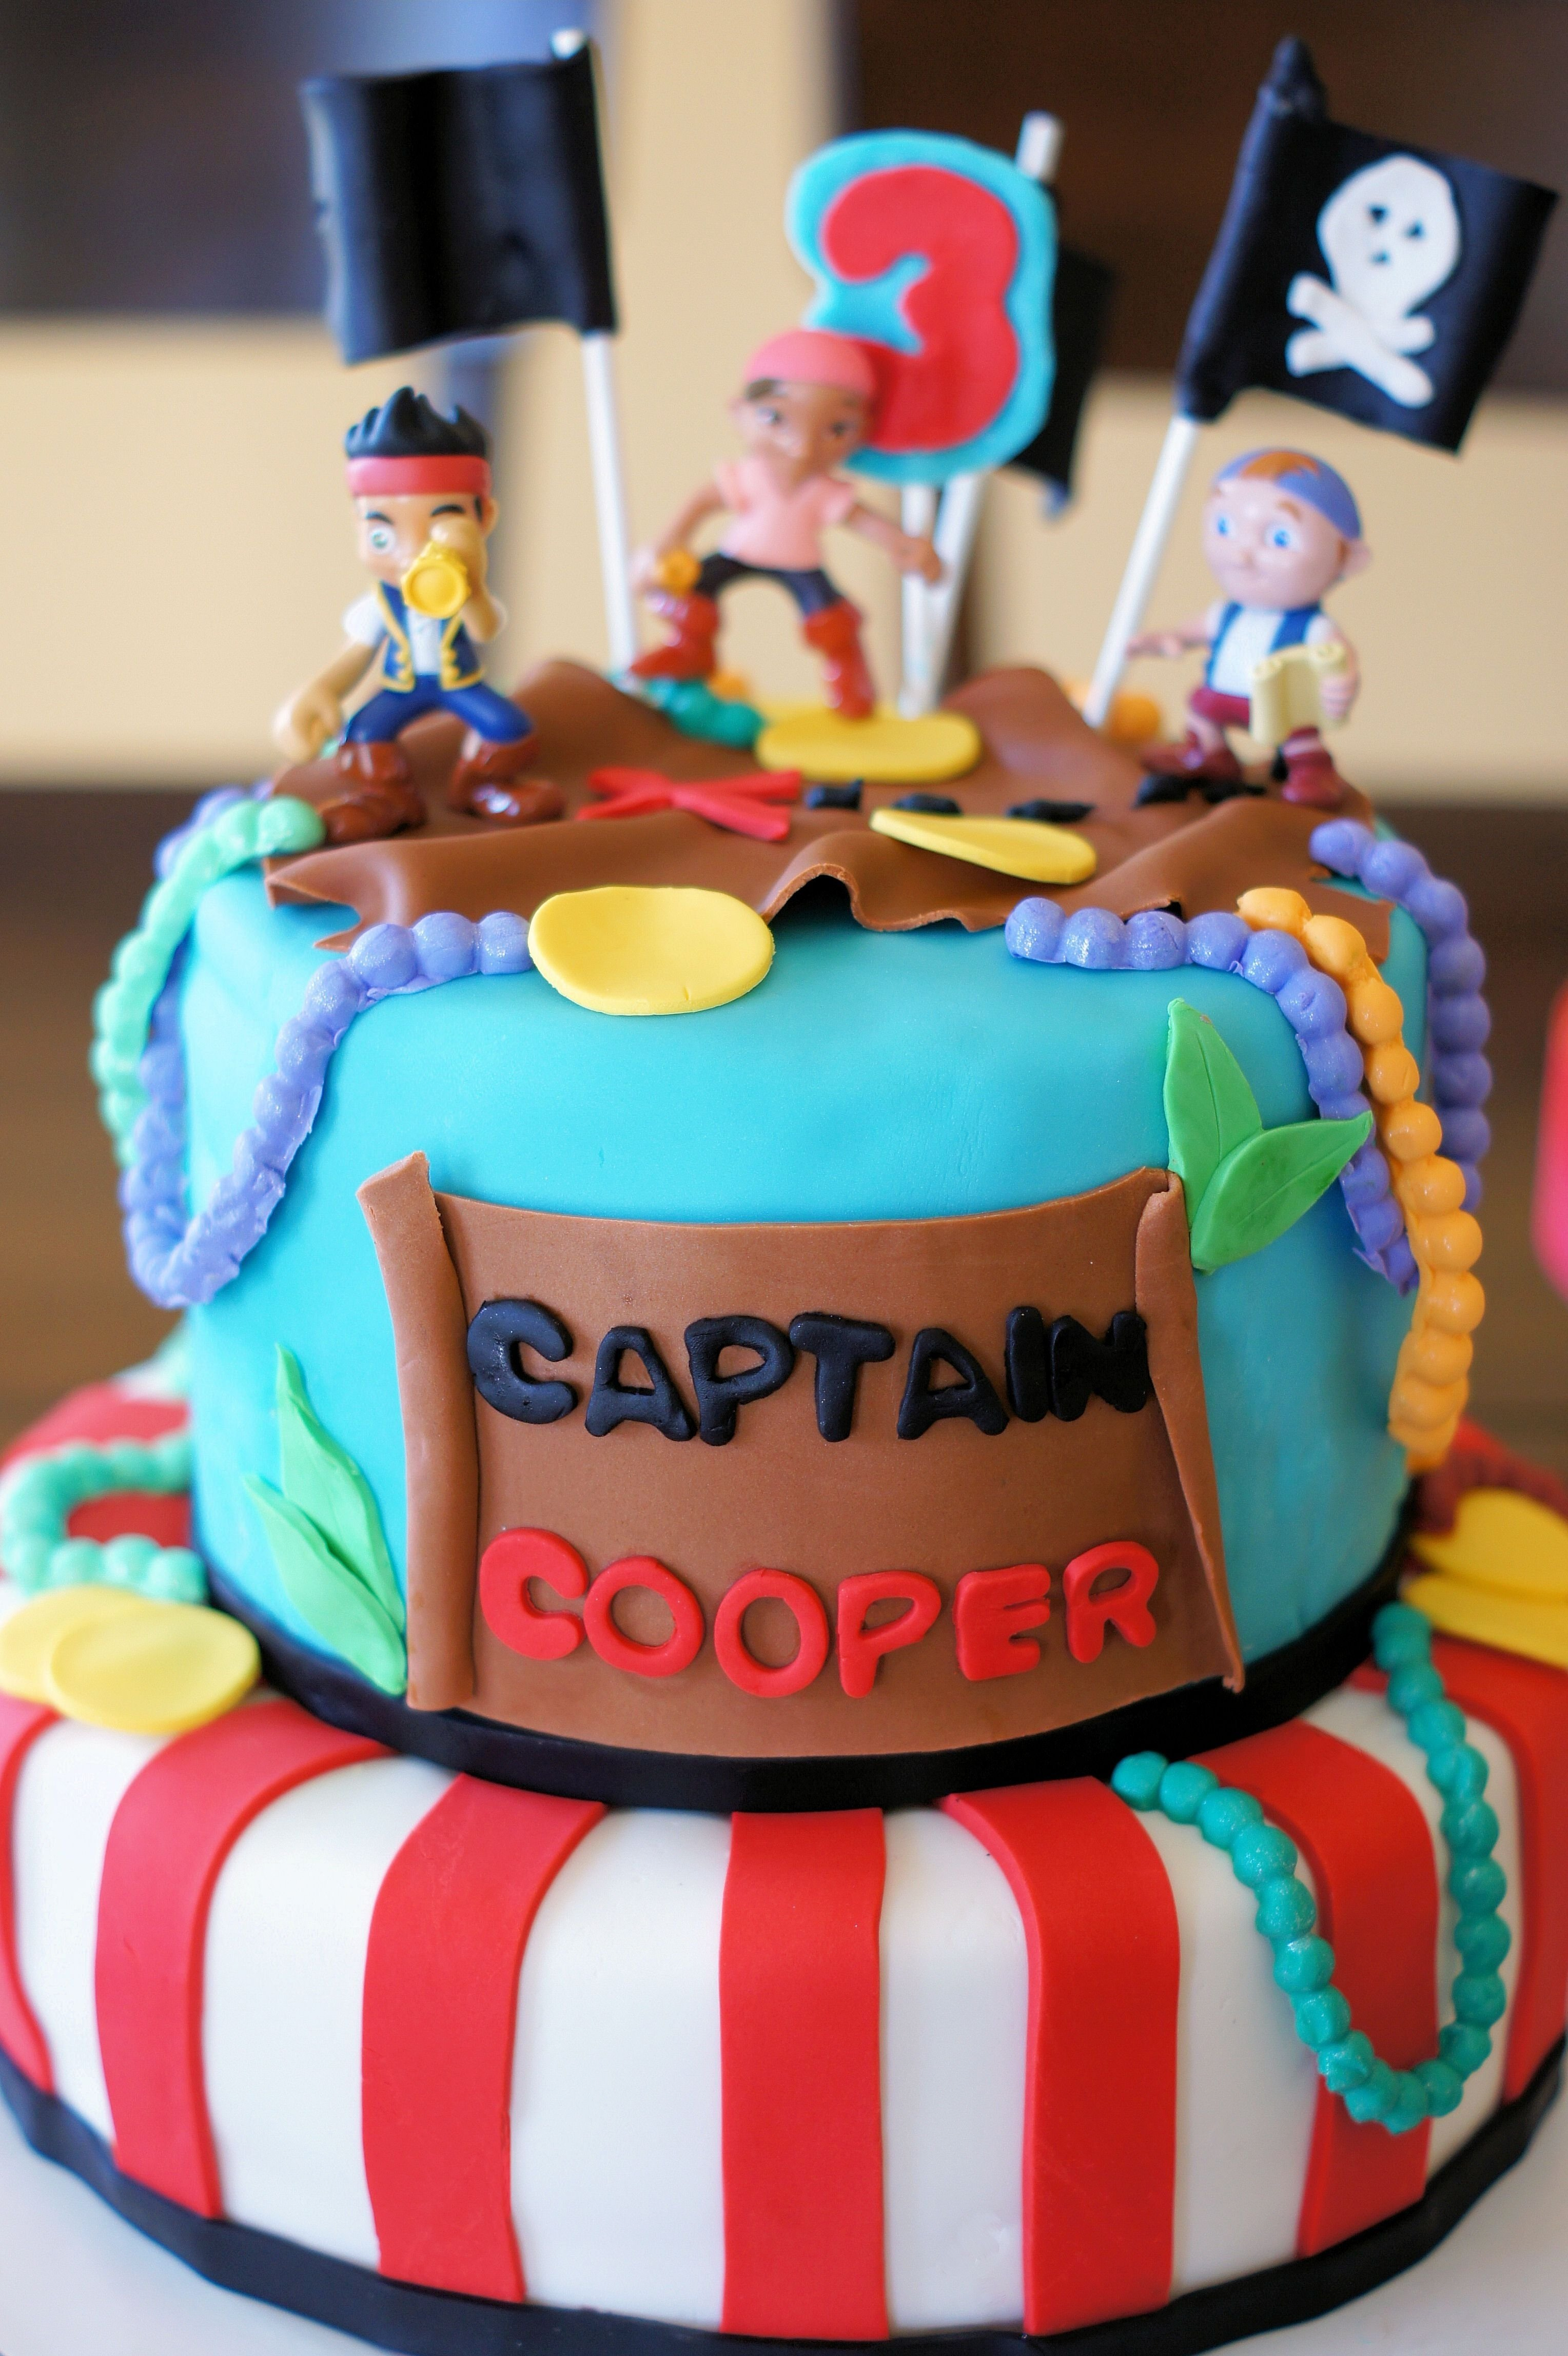 jake and the neverland pirates cake | cake inspirations | pinterest